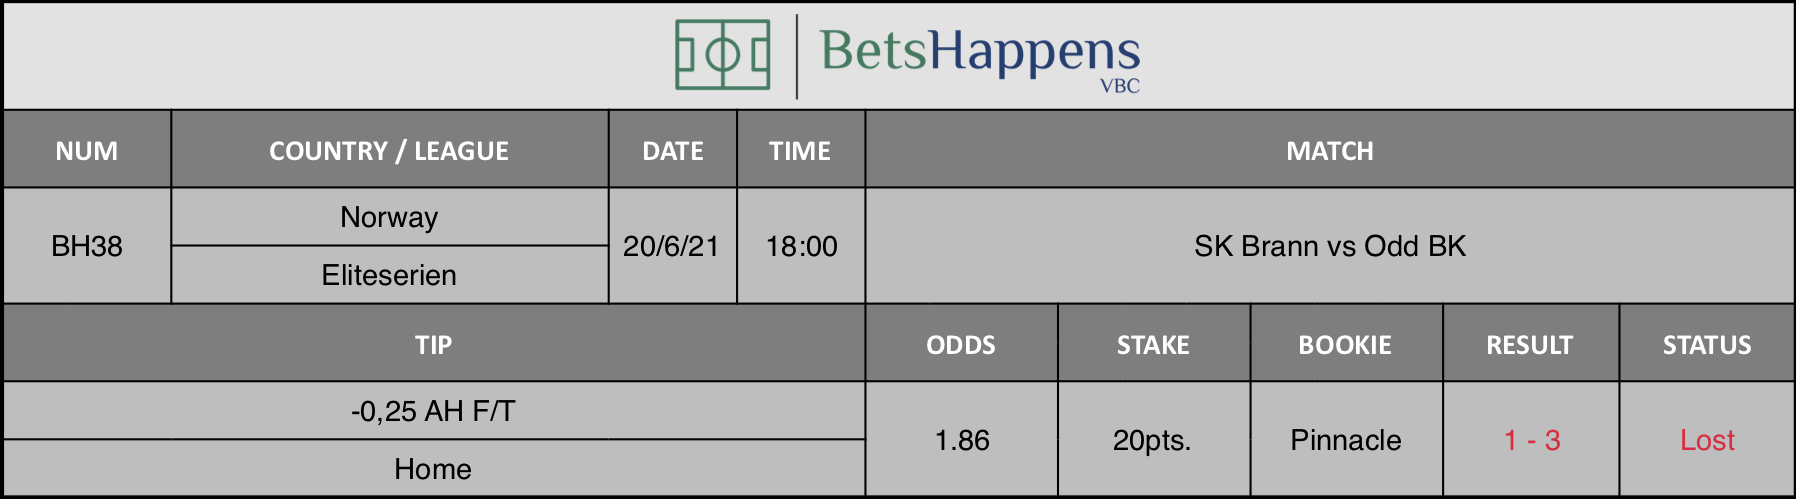 Results of our tip for the SK Brann vs Odd BK match -0,25 AH F/T Home is recommended.